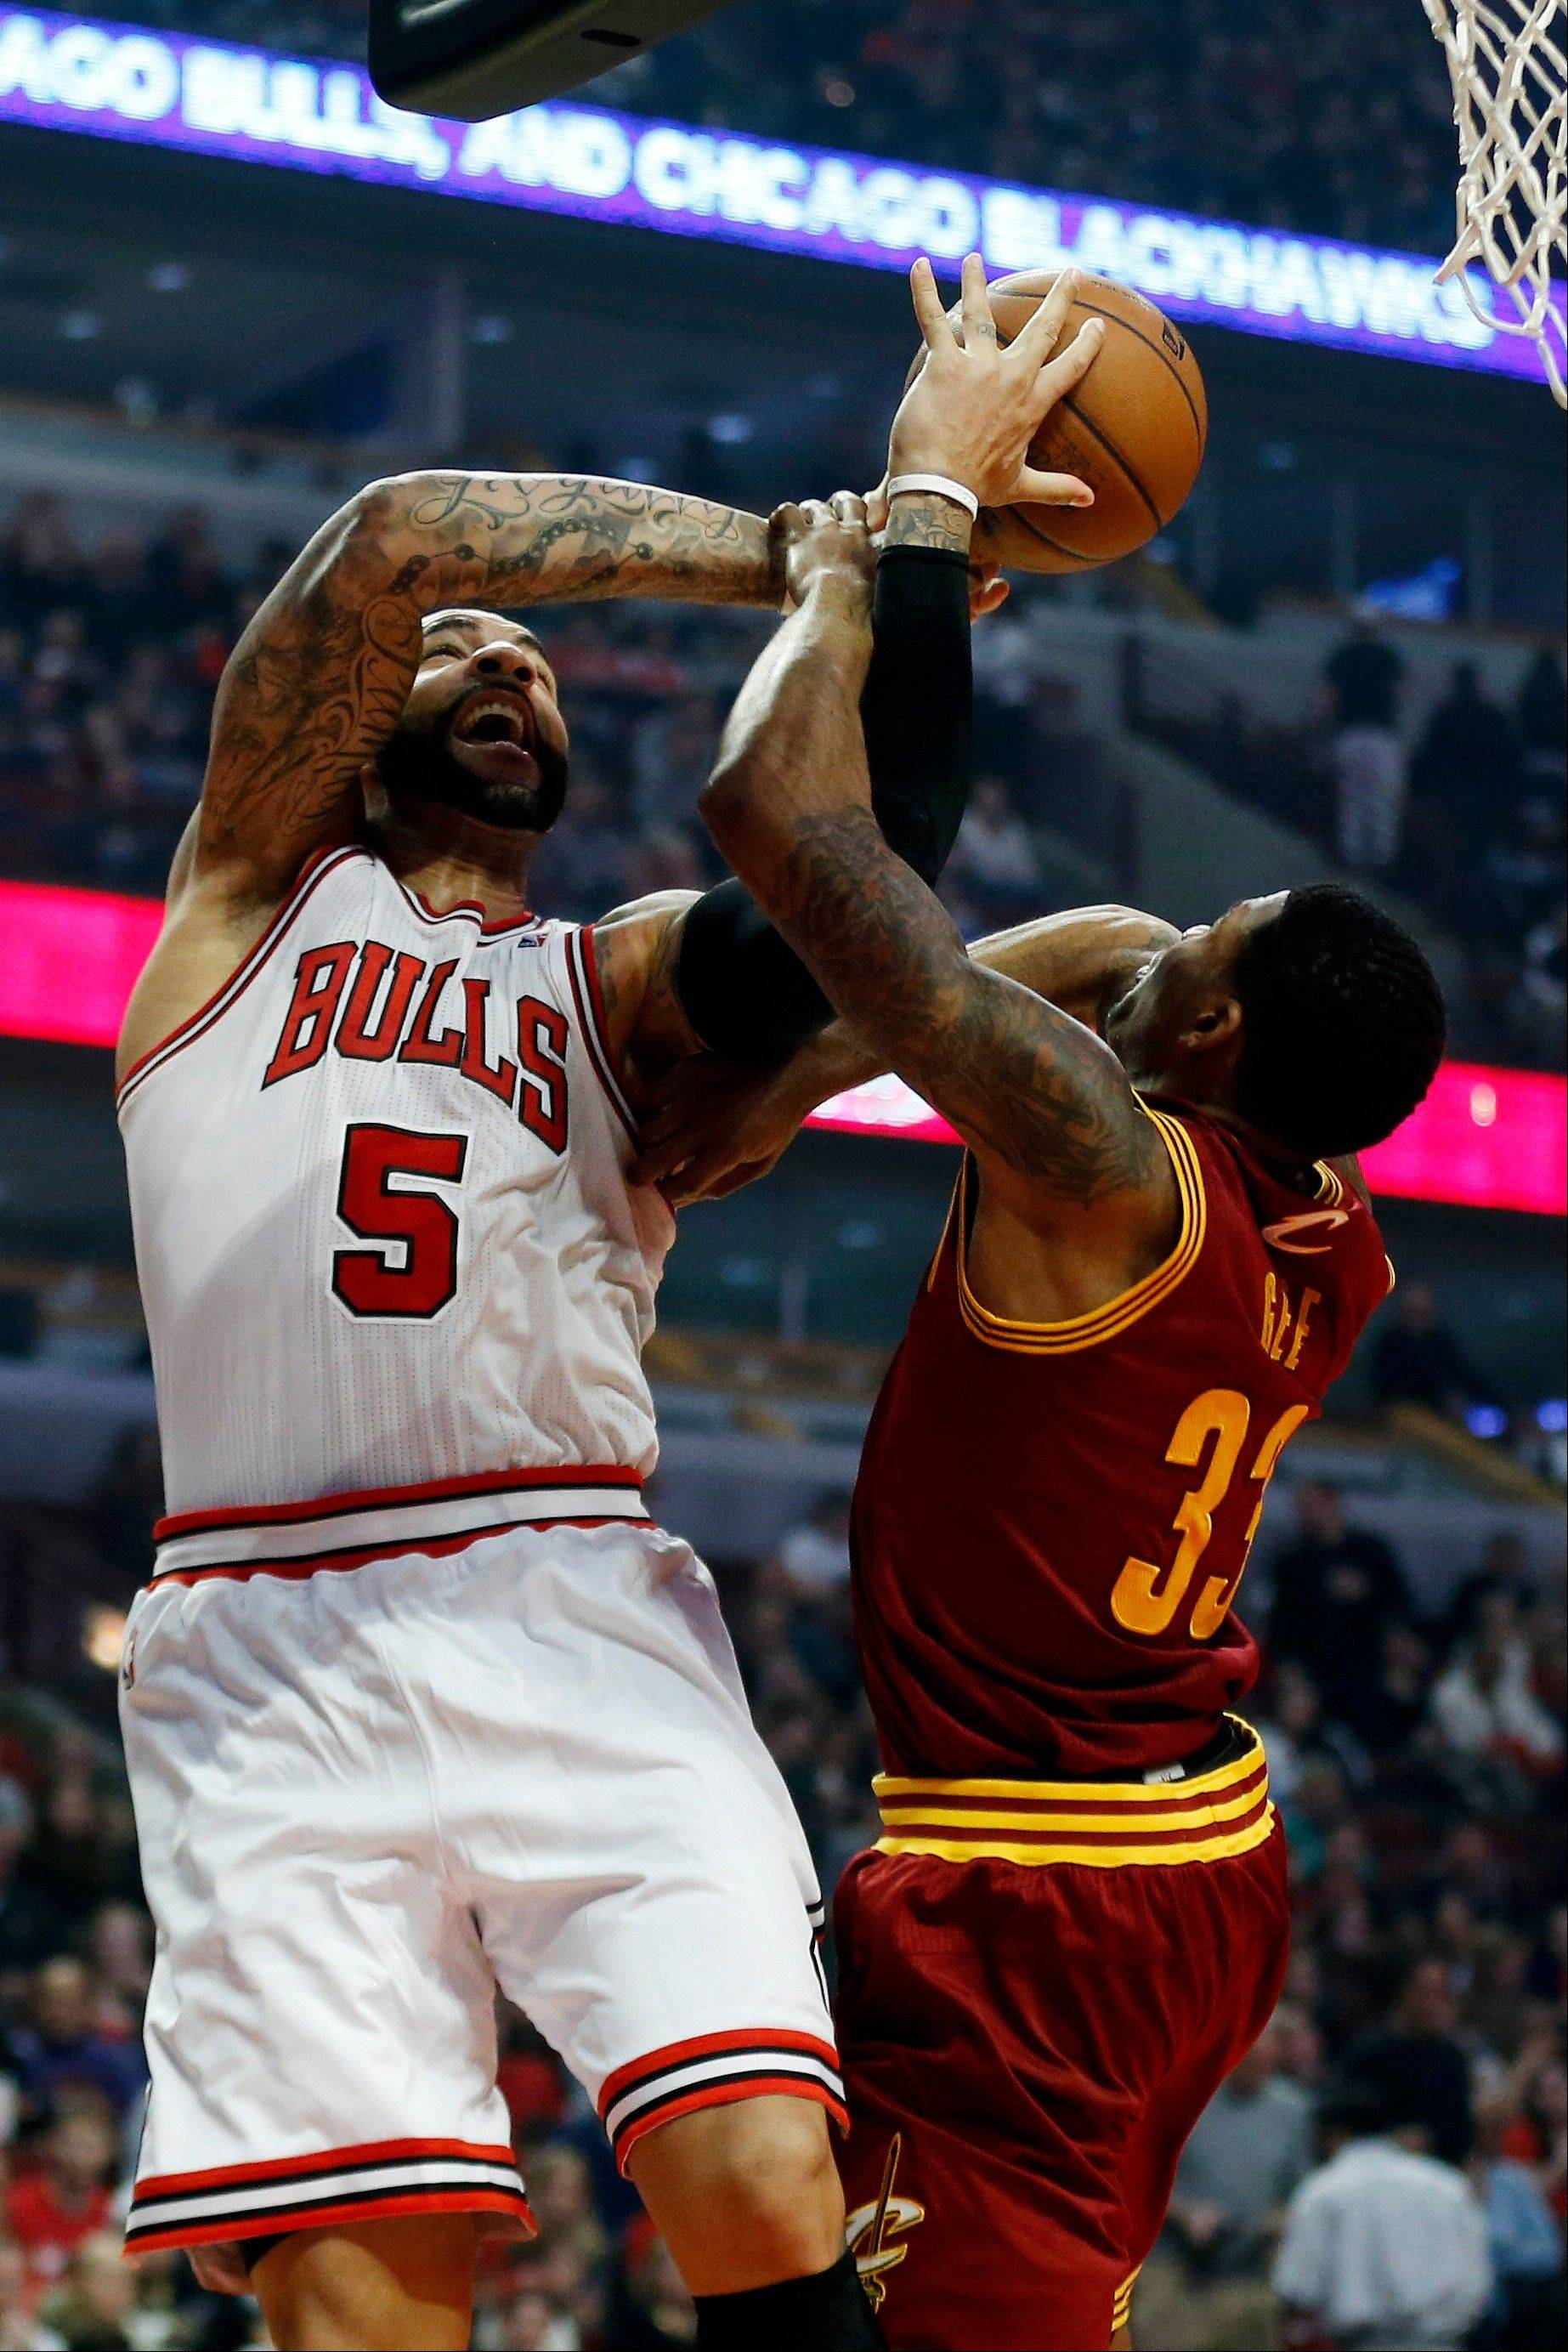 Bulls forward Carlos Boozer draws a foul from Cleveland Cavaliers forward Alonzo Gee during the second half of Saturday's game in Chicago.